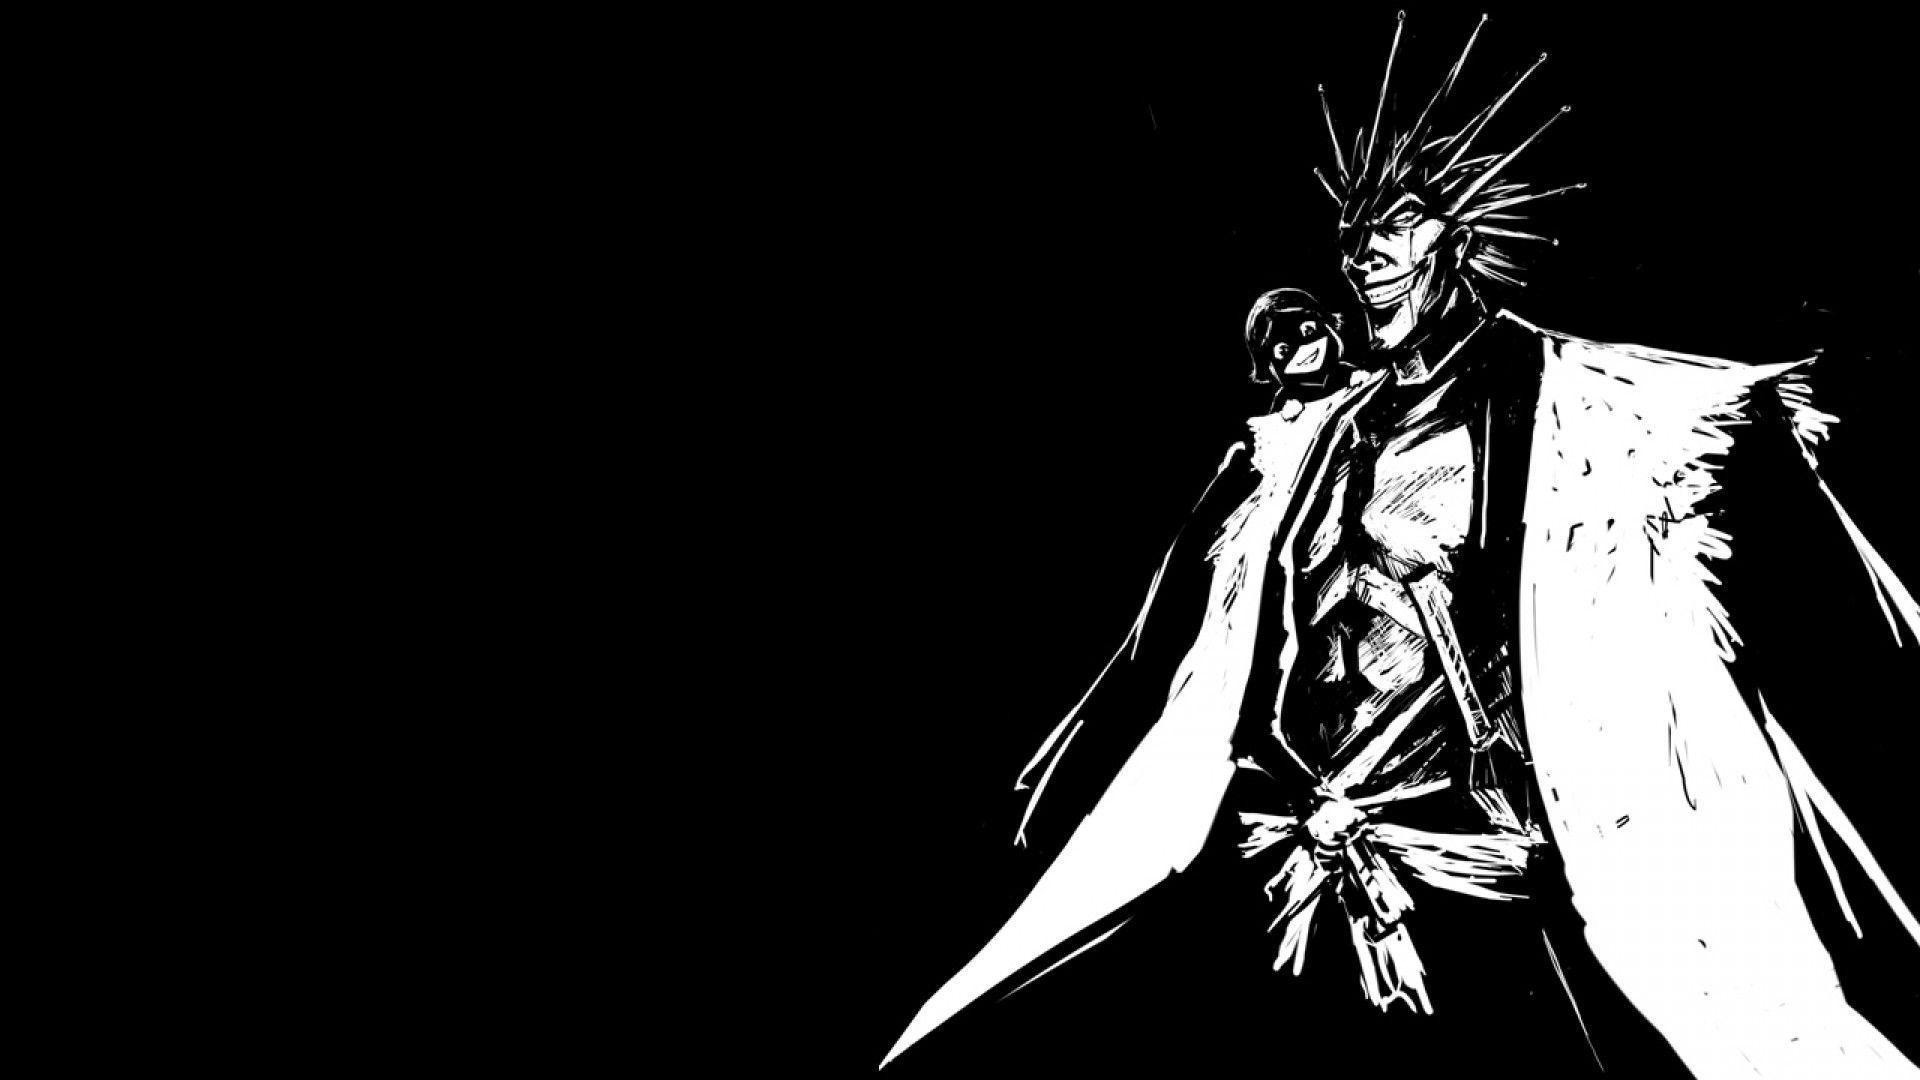 1920x1080 In The Darkness Kenpachi Of Zaraki HD Wallpapers | HD Wallpapers